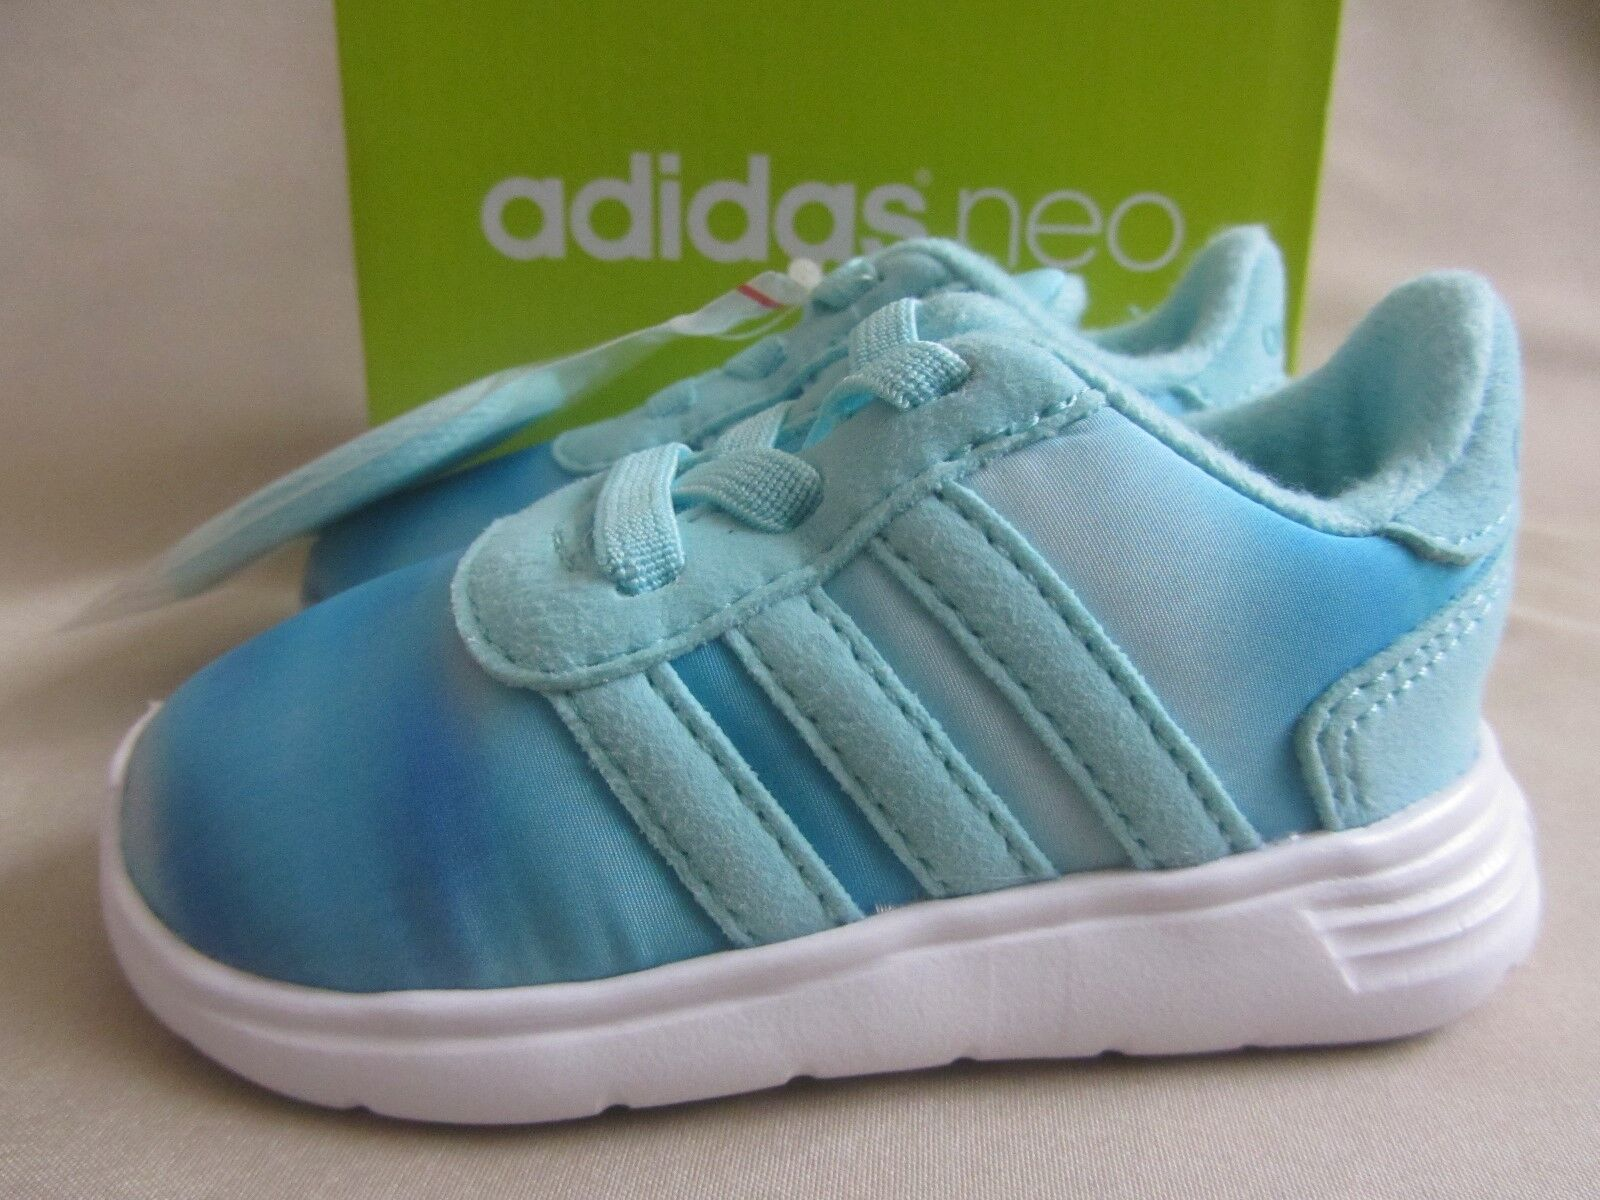 Adidas Lite Racer Sneakers Infant Girls Size 4 Aqua Blue New With Box